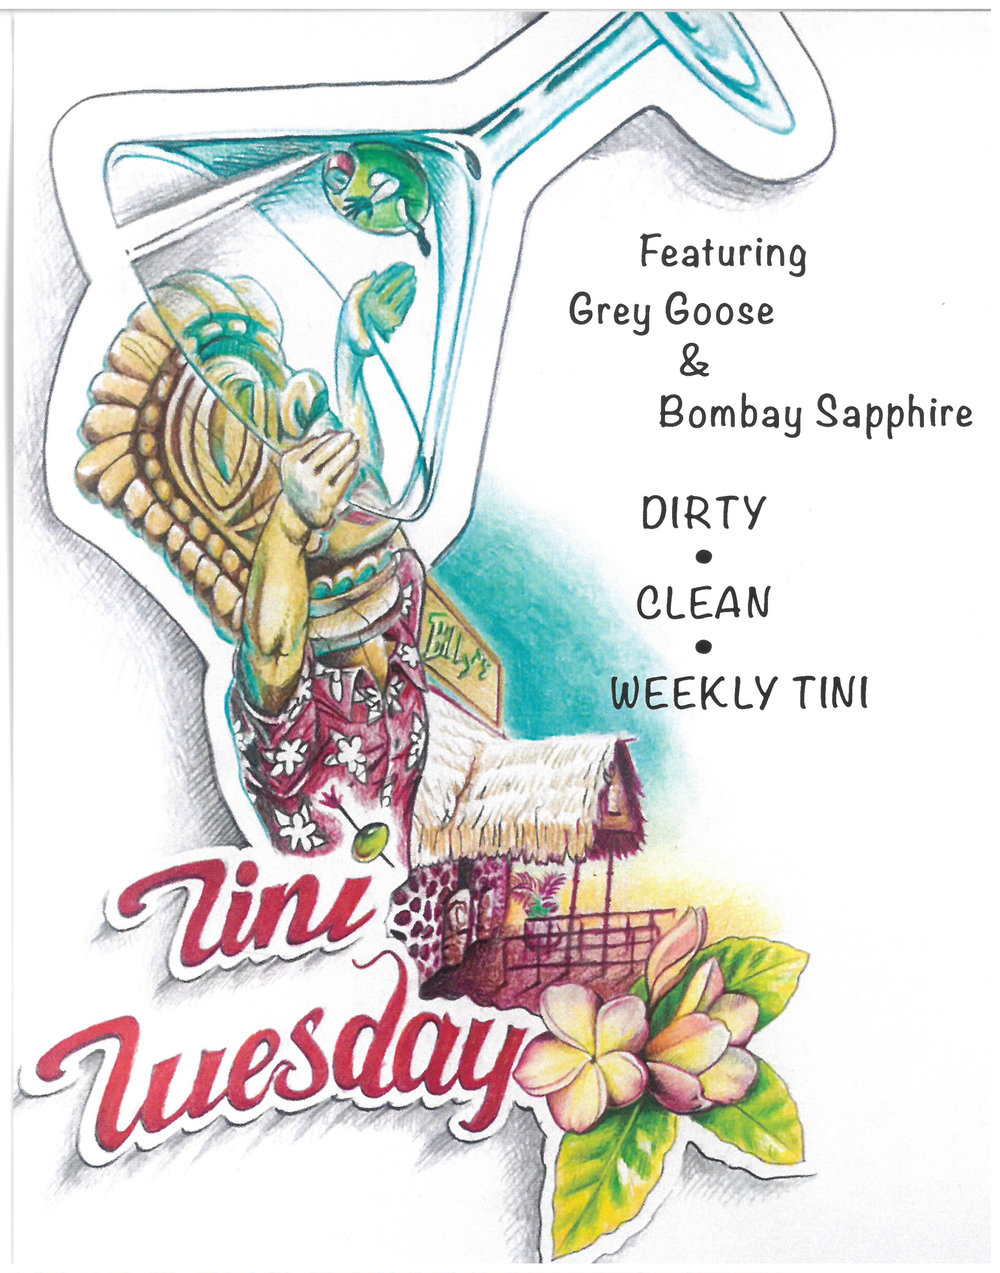 Billy's at the Beach Newport Beach 'Tini Tuesday